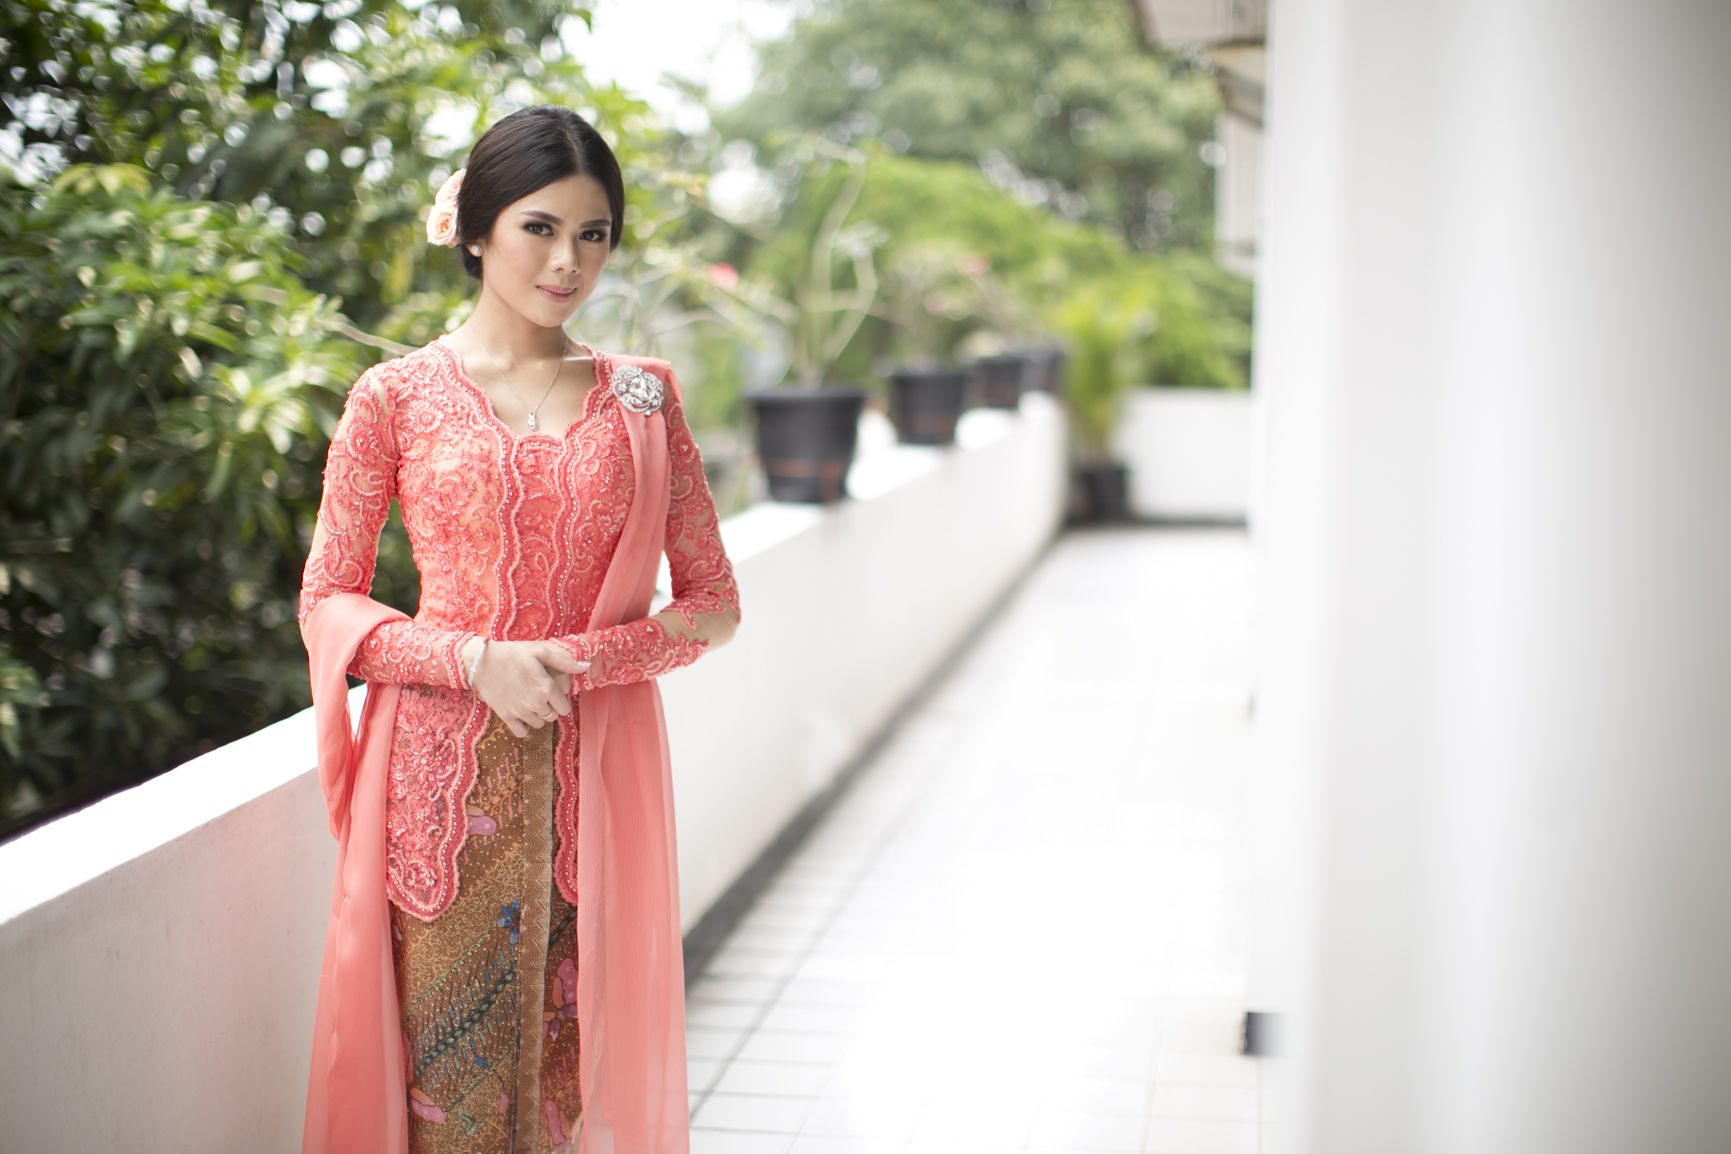 Classic Kebaya For Intimate Martumpol Ceremony Of Gaby And David